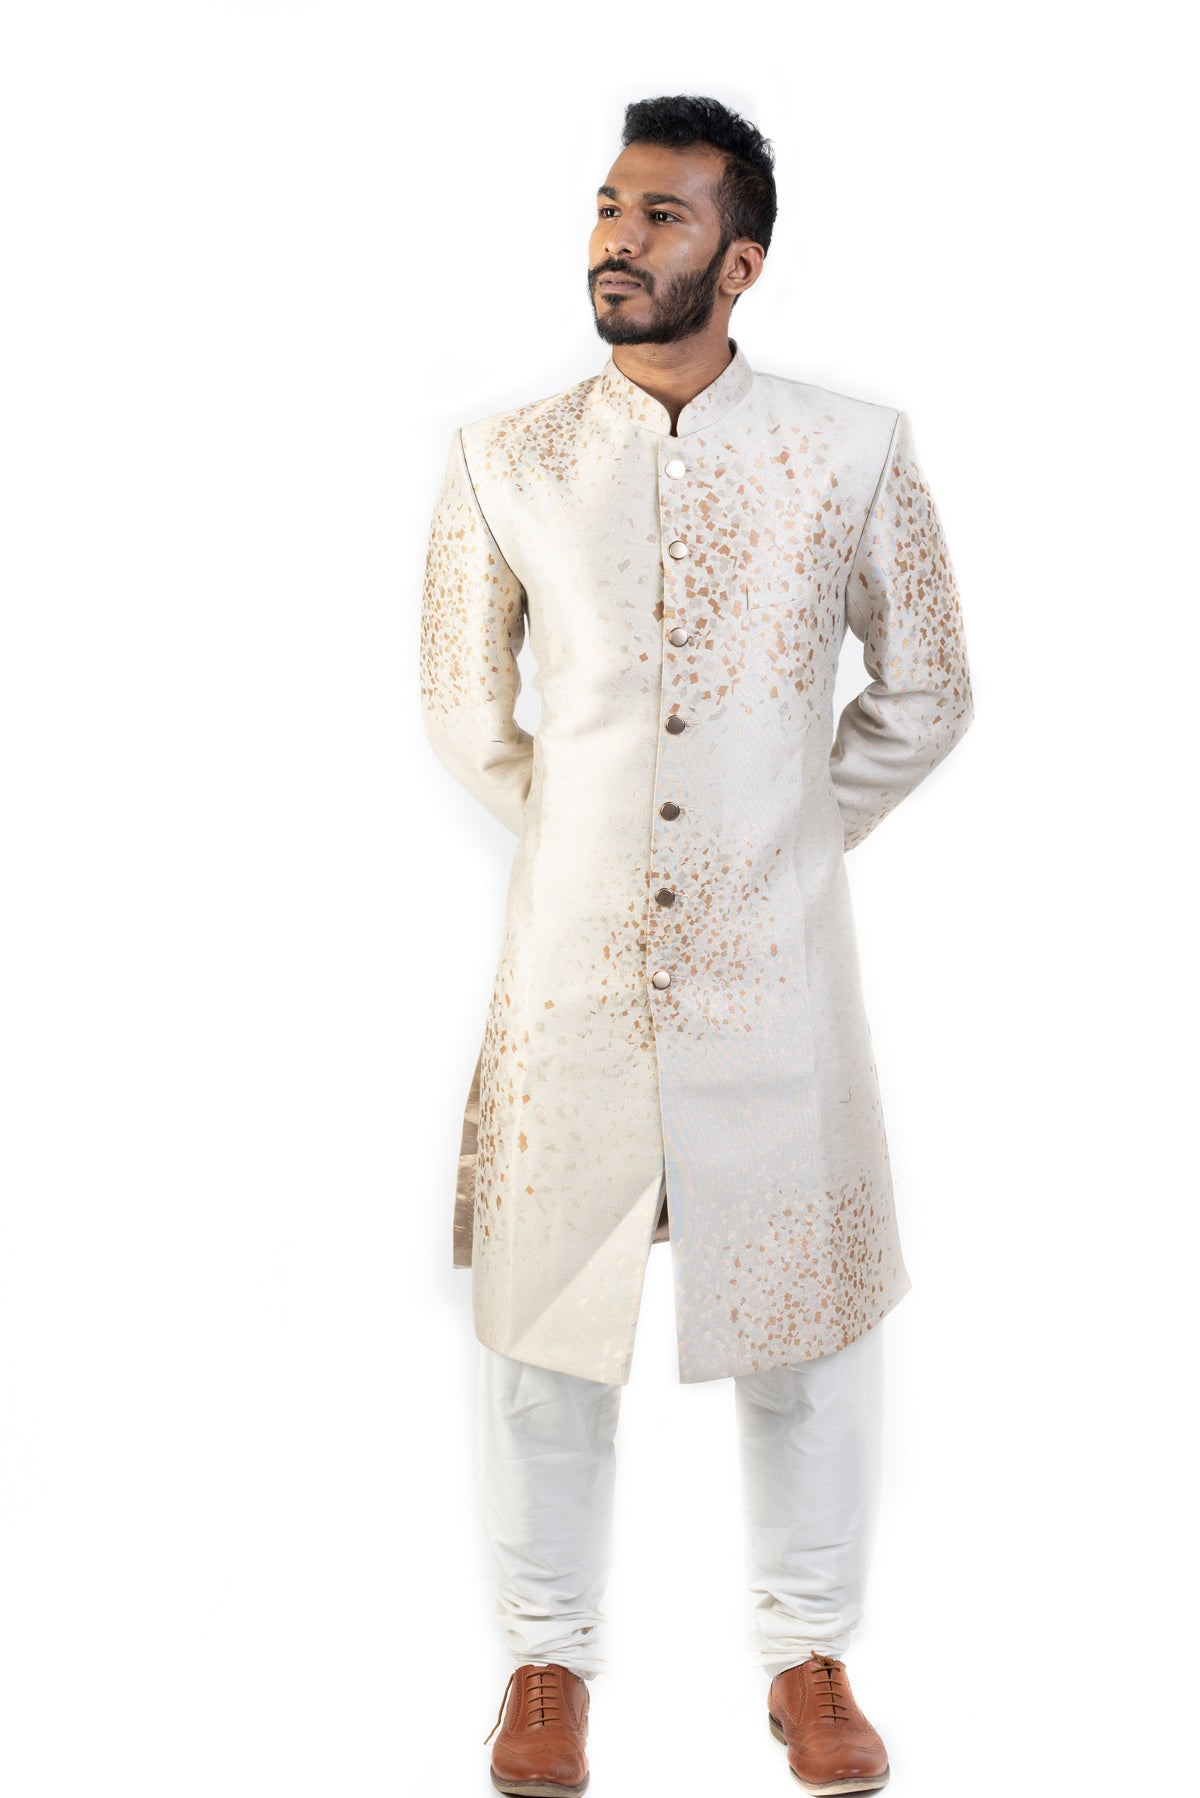 Offwhite Sherwani With Golden Squares